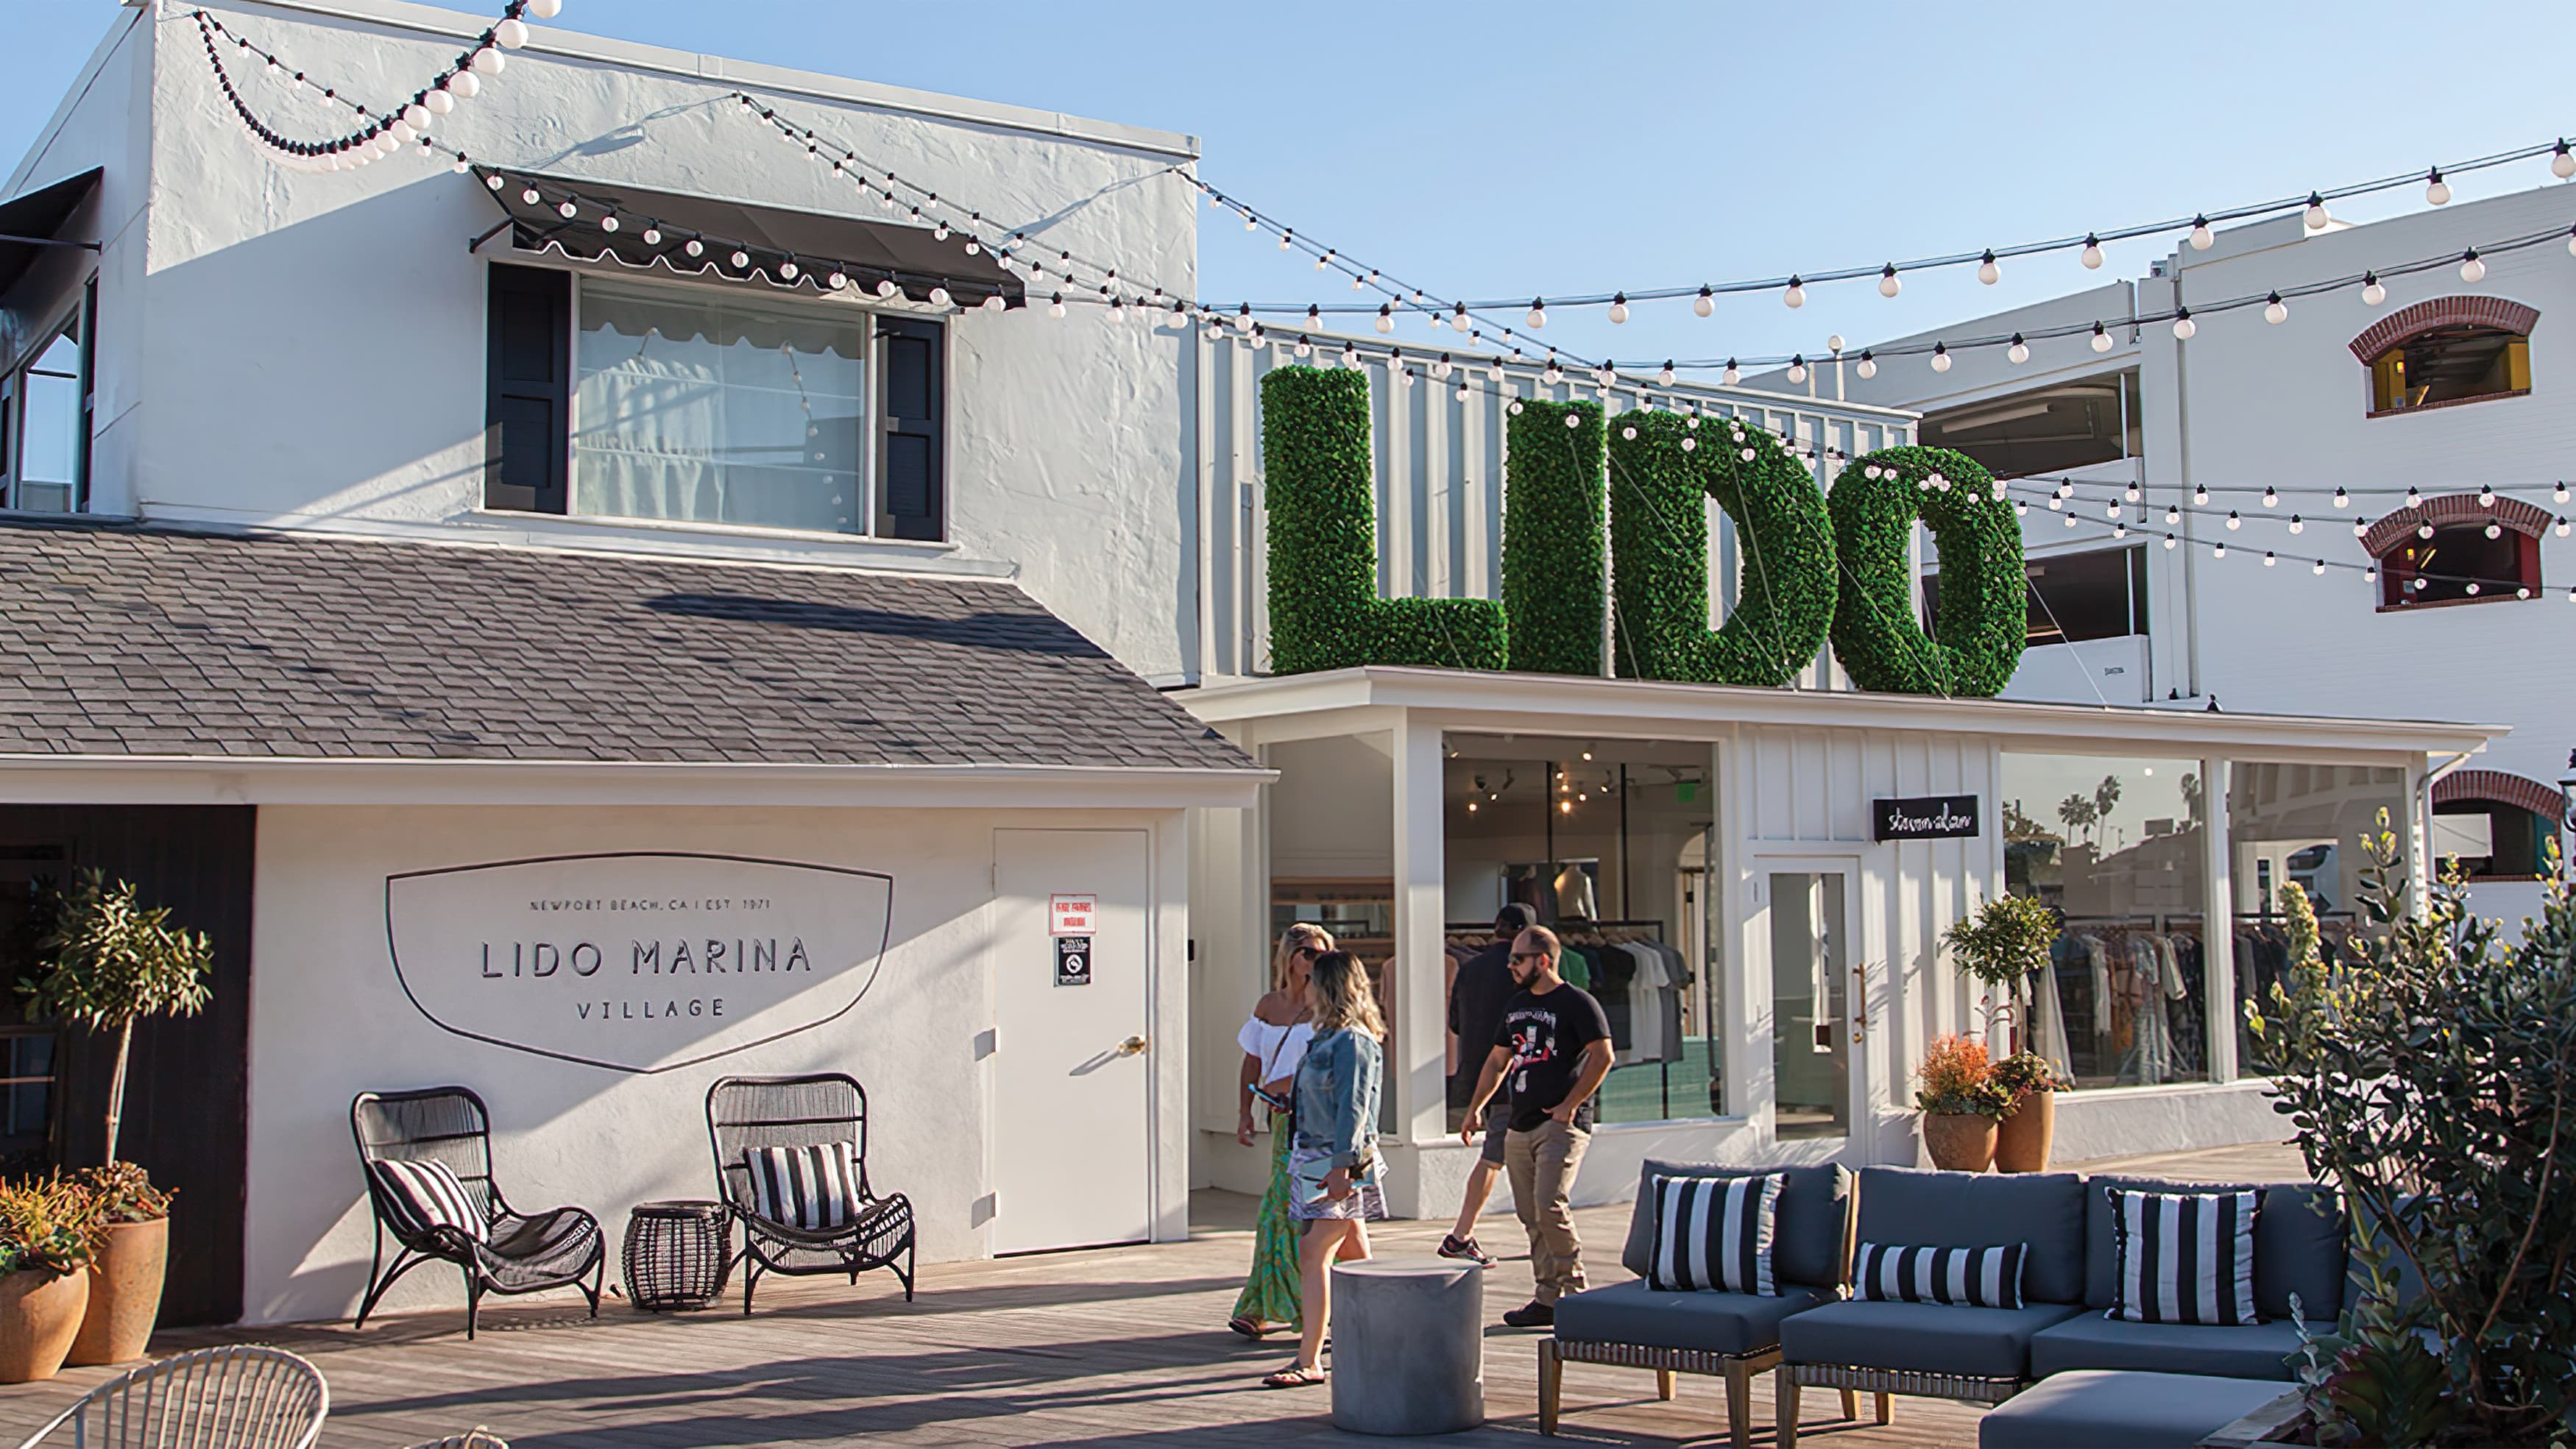 A photo showing an identity sign at Lido Marina Village.